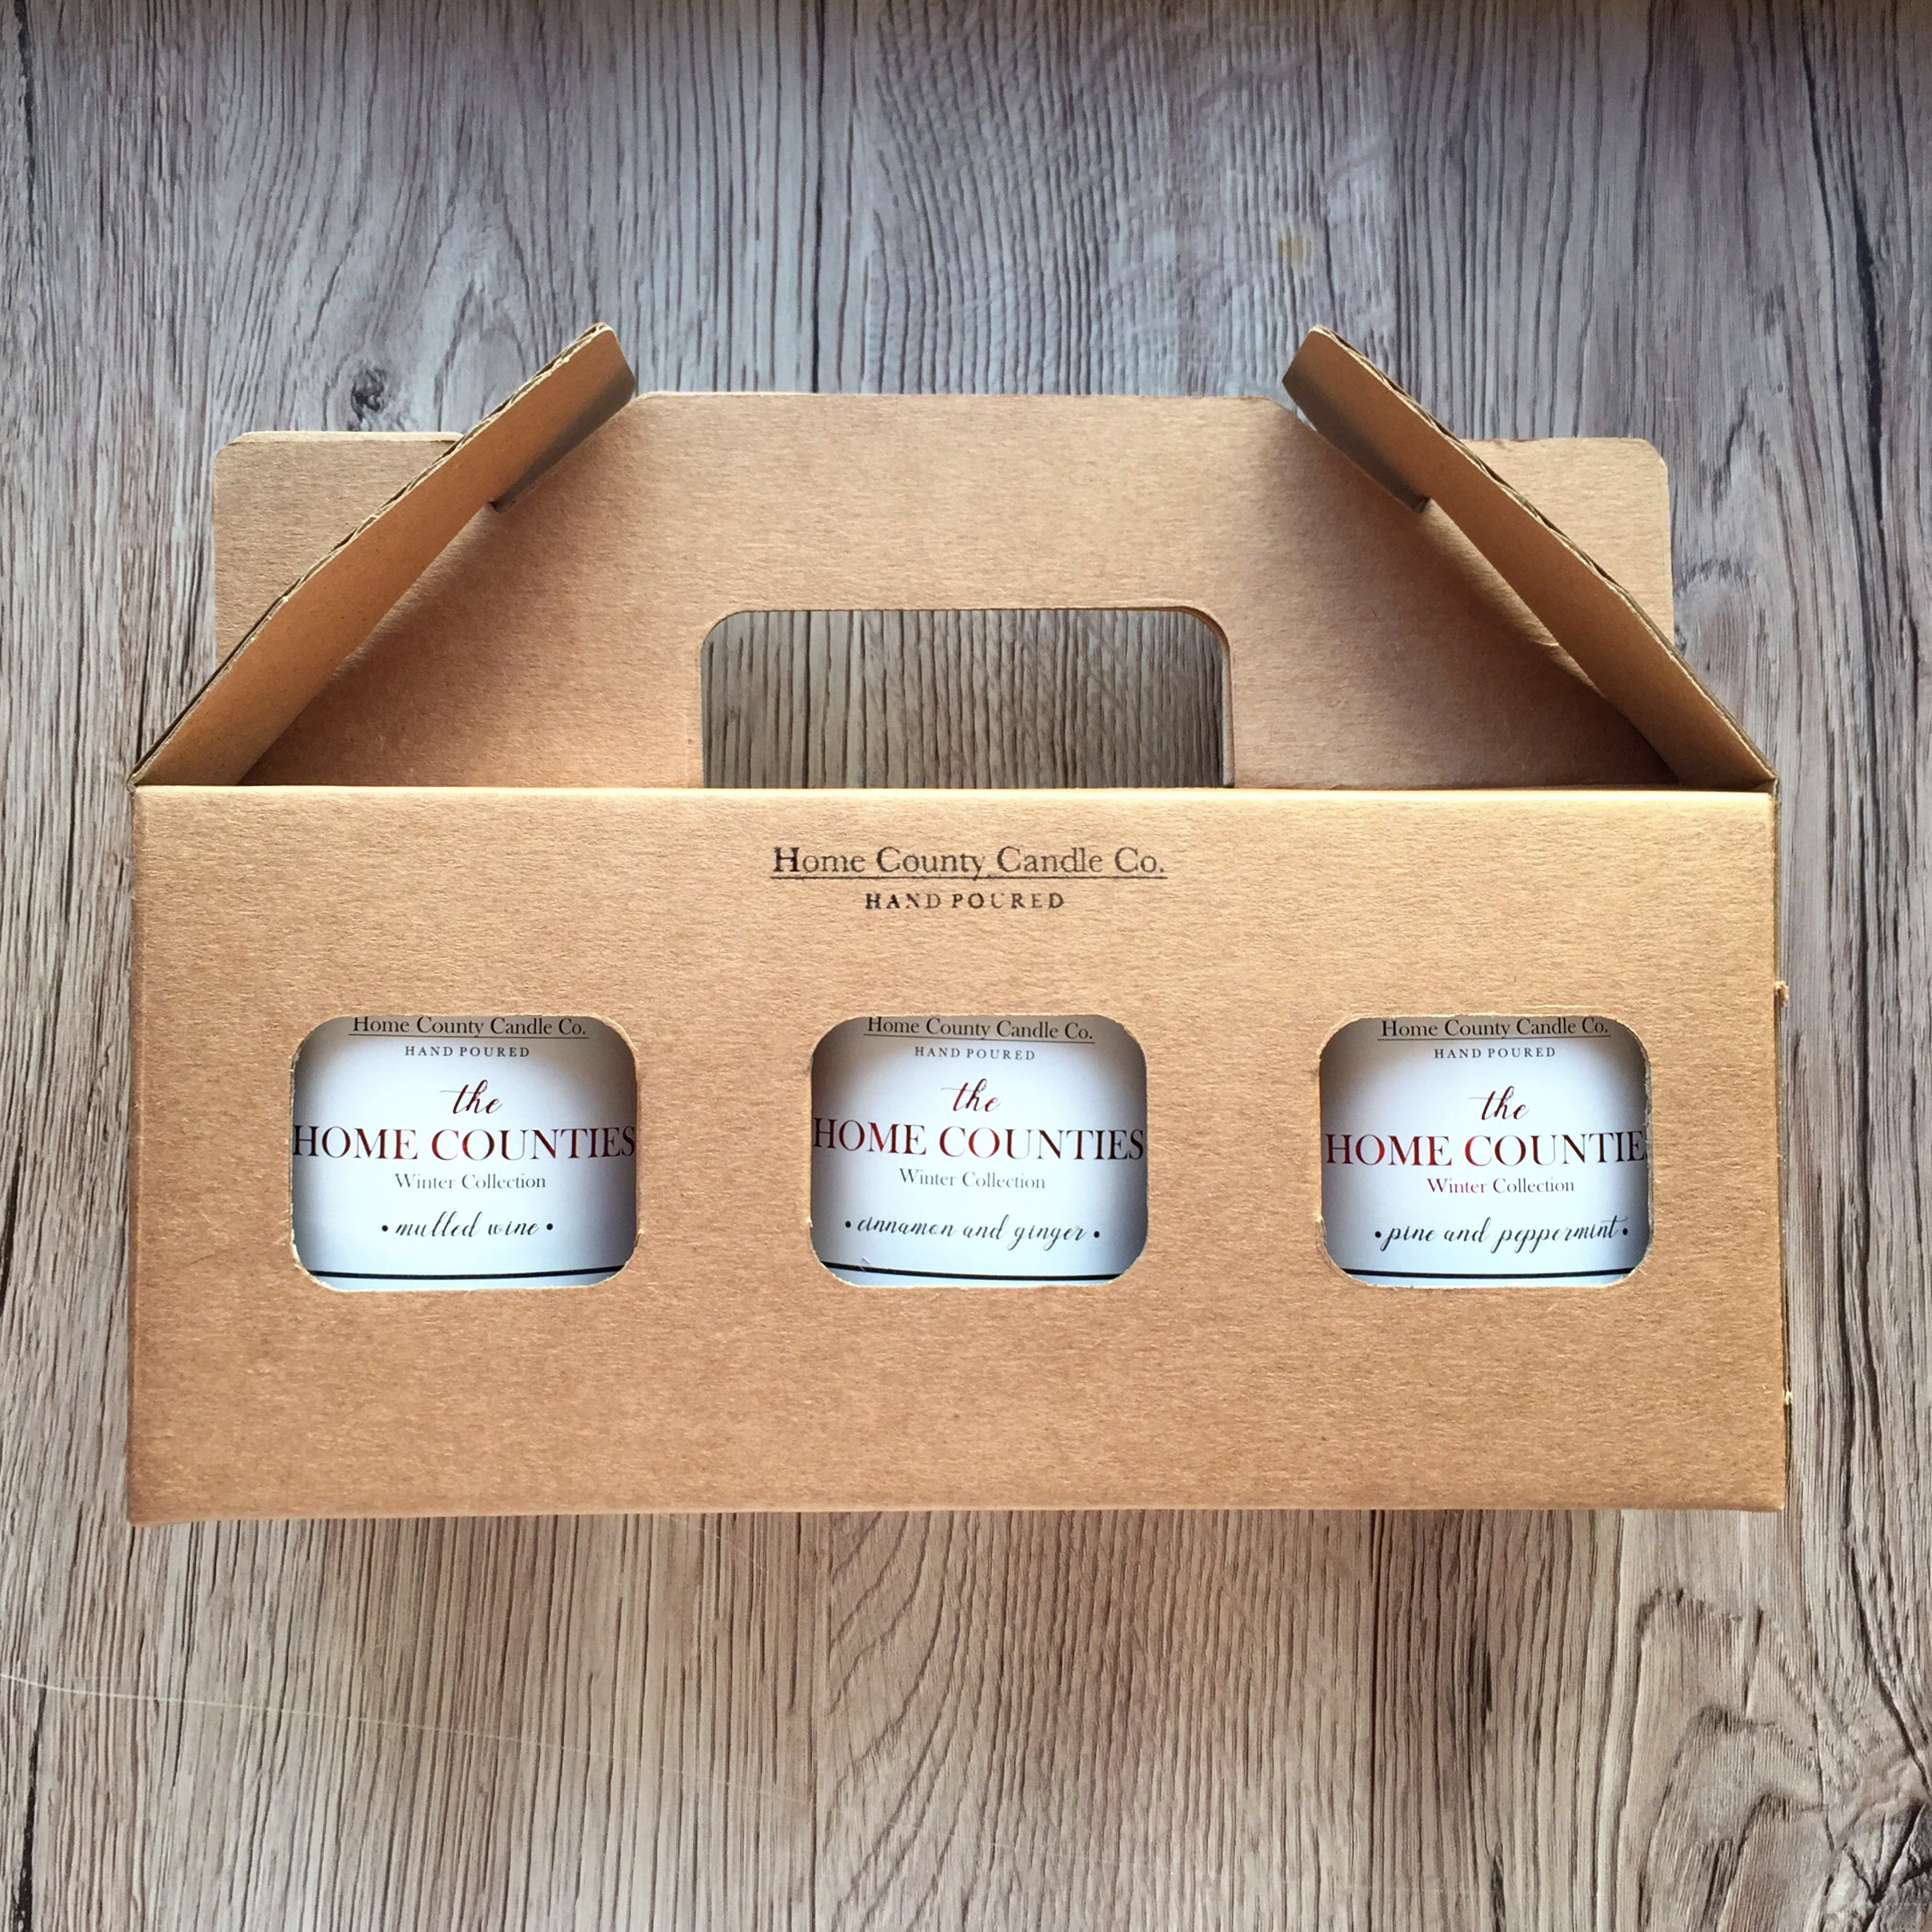 "our 3 top picks this december - 1. Candle Trio Gift Sets - According to 'The Gift Box' ""if you're unsure which fragranced candle is best to give, why not choose a gift set with various scents included? This takes away all the worry of not selecting someone's favourite fragrance."" Not only that, our Candle Trio Gift sets are also a great way of taking your recipient down memory lane (""remember when you grew up in Bucks, moved to Herts and holidayed in Yorkshire""). It also helps that they come beautifully packaged in a lovely little hand-stamped gift box - so hardly any wrapping required!2. Candle & Diffuser Gift Sets - If you really want your gift to last, the addition of one of our reed diffusers is perfect! With our candle and diffuser gift sets you can once again mix and match your scents, and the diffuser will last around 4-5 months!3. 3 Wick Candles - We all have that one candle-mad friend who goes through candles like hotcakes (guilty!). Our 3-wick candles, with a burn time of around 80-85 hours are the perfect gift for the candle lover in your life this Christmas (and will also make fantastic Christmas table centerpieces)!"